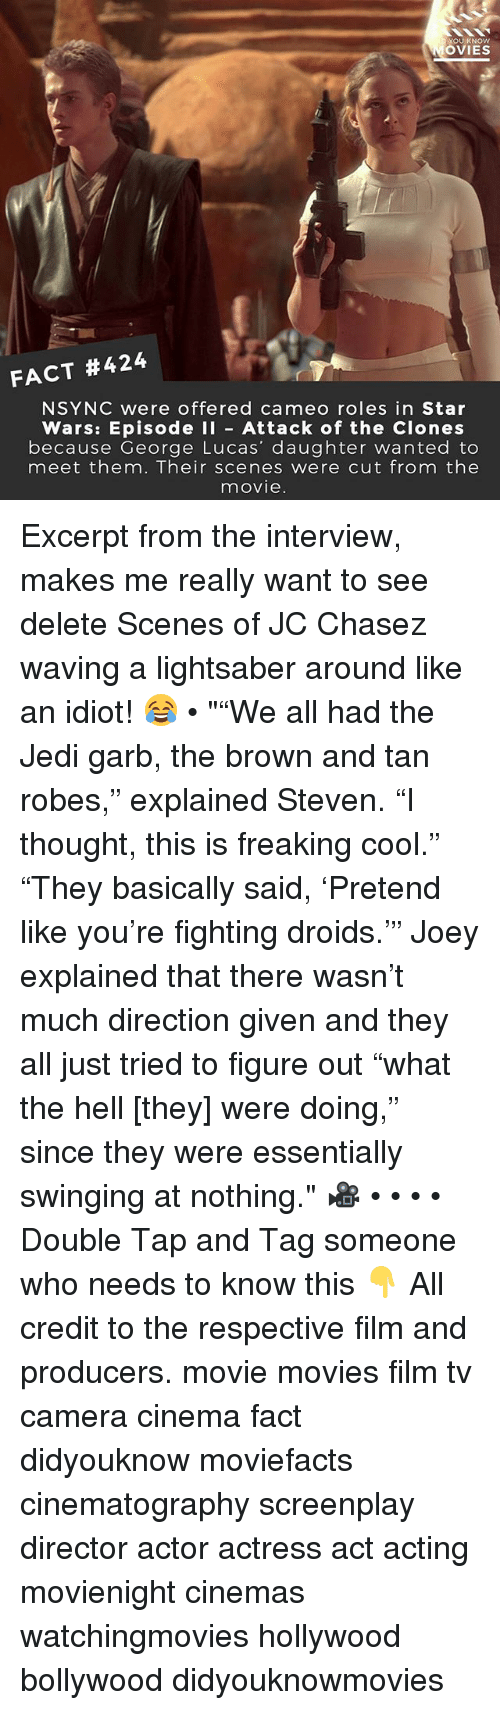 """Jedi, Lightsaber, and Memes: OU KNOW  OVIES  FACT #424  NSYNC were offered cameo roles in Star  Wars: Episode I Attack of the Clones  because George Lucas' daughter wanted to  meet them. Their scenes were cut from the  movie Excerpt from the interview, makes me really want to see delete Scenes of JC Chasez waving a lightsaber around like an idiot! 😂 • """"""""We all had the Jedi garb, the brown and tan robes,"""" explained Steven. """"I thought, this is freaking cool."""" """"They basically said, 'Pretend like you're fighting droids.'"""" Joey explained that there wasn't much direction given and they all just tried to figure out """"what the hell [they] were doing,"""" since they were essentially swinging at nothing."""" 🎥 • • • • Double Tap and Tag someone who needs to know this 👇 All credit to the respective film and producers. movie movies film tv camera cinema fact didyouknow moviefacts cinematography screenplay director actor actress act acting movienight cinemas watchingmovies hollywood bollywood didyouknowmovies"""